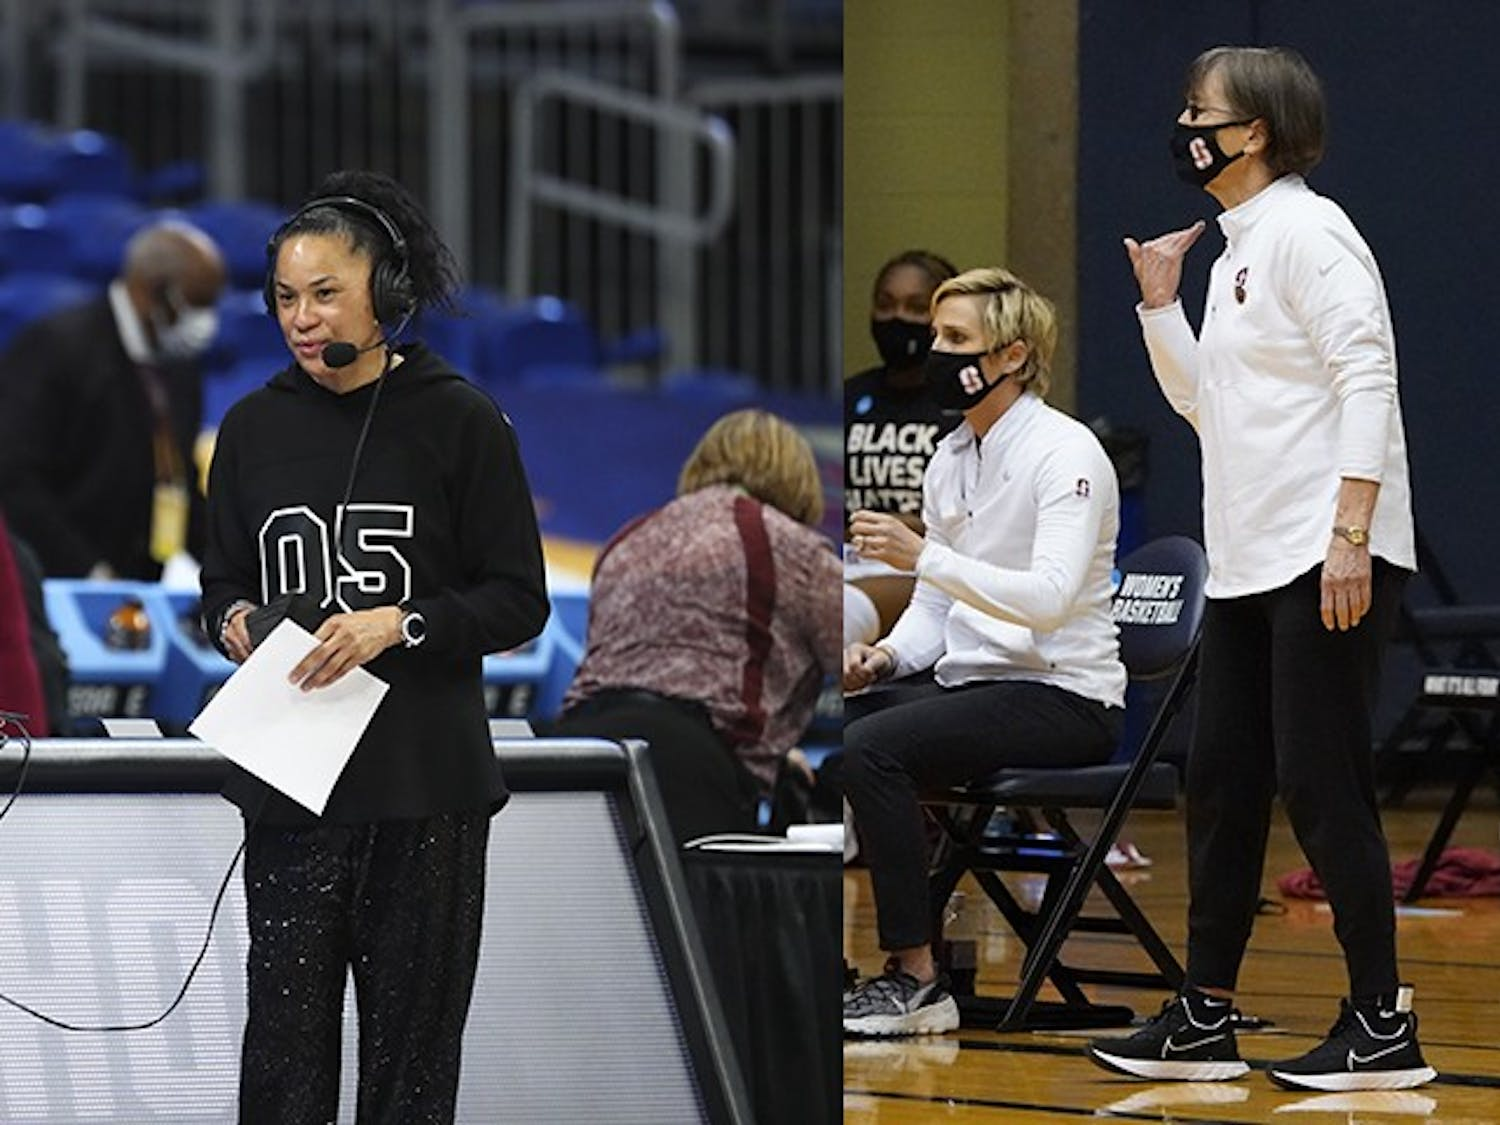 South Carolina head coach Dawn Staley (left) and Stanford head coach Tara VanDerveer (right) coach from the sidelines. The two coaches have a long history of playing each other as both coaches and players.